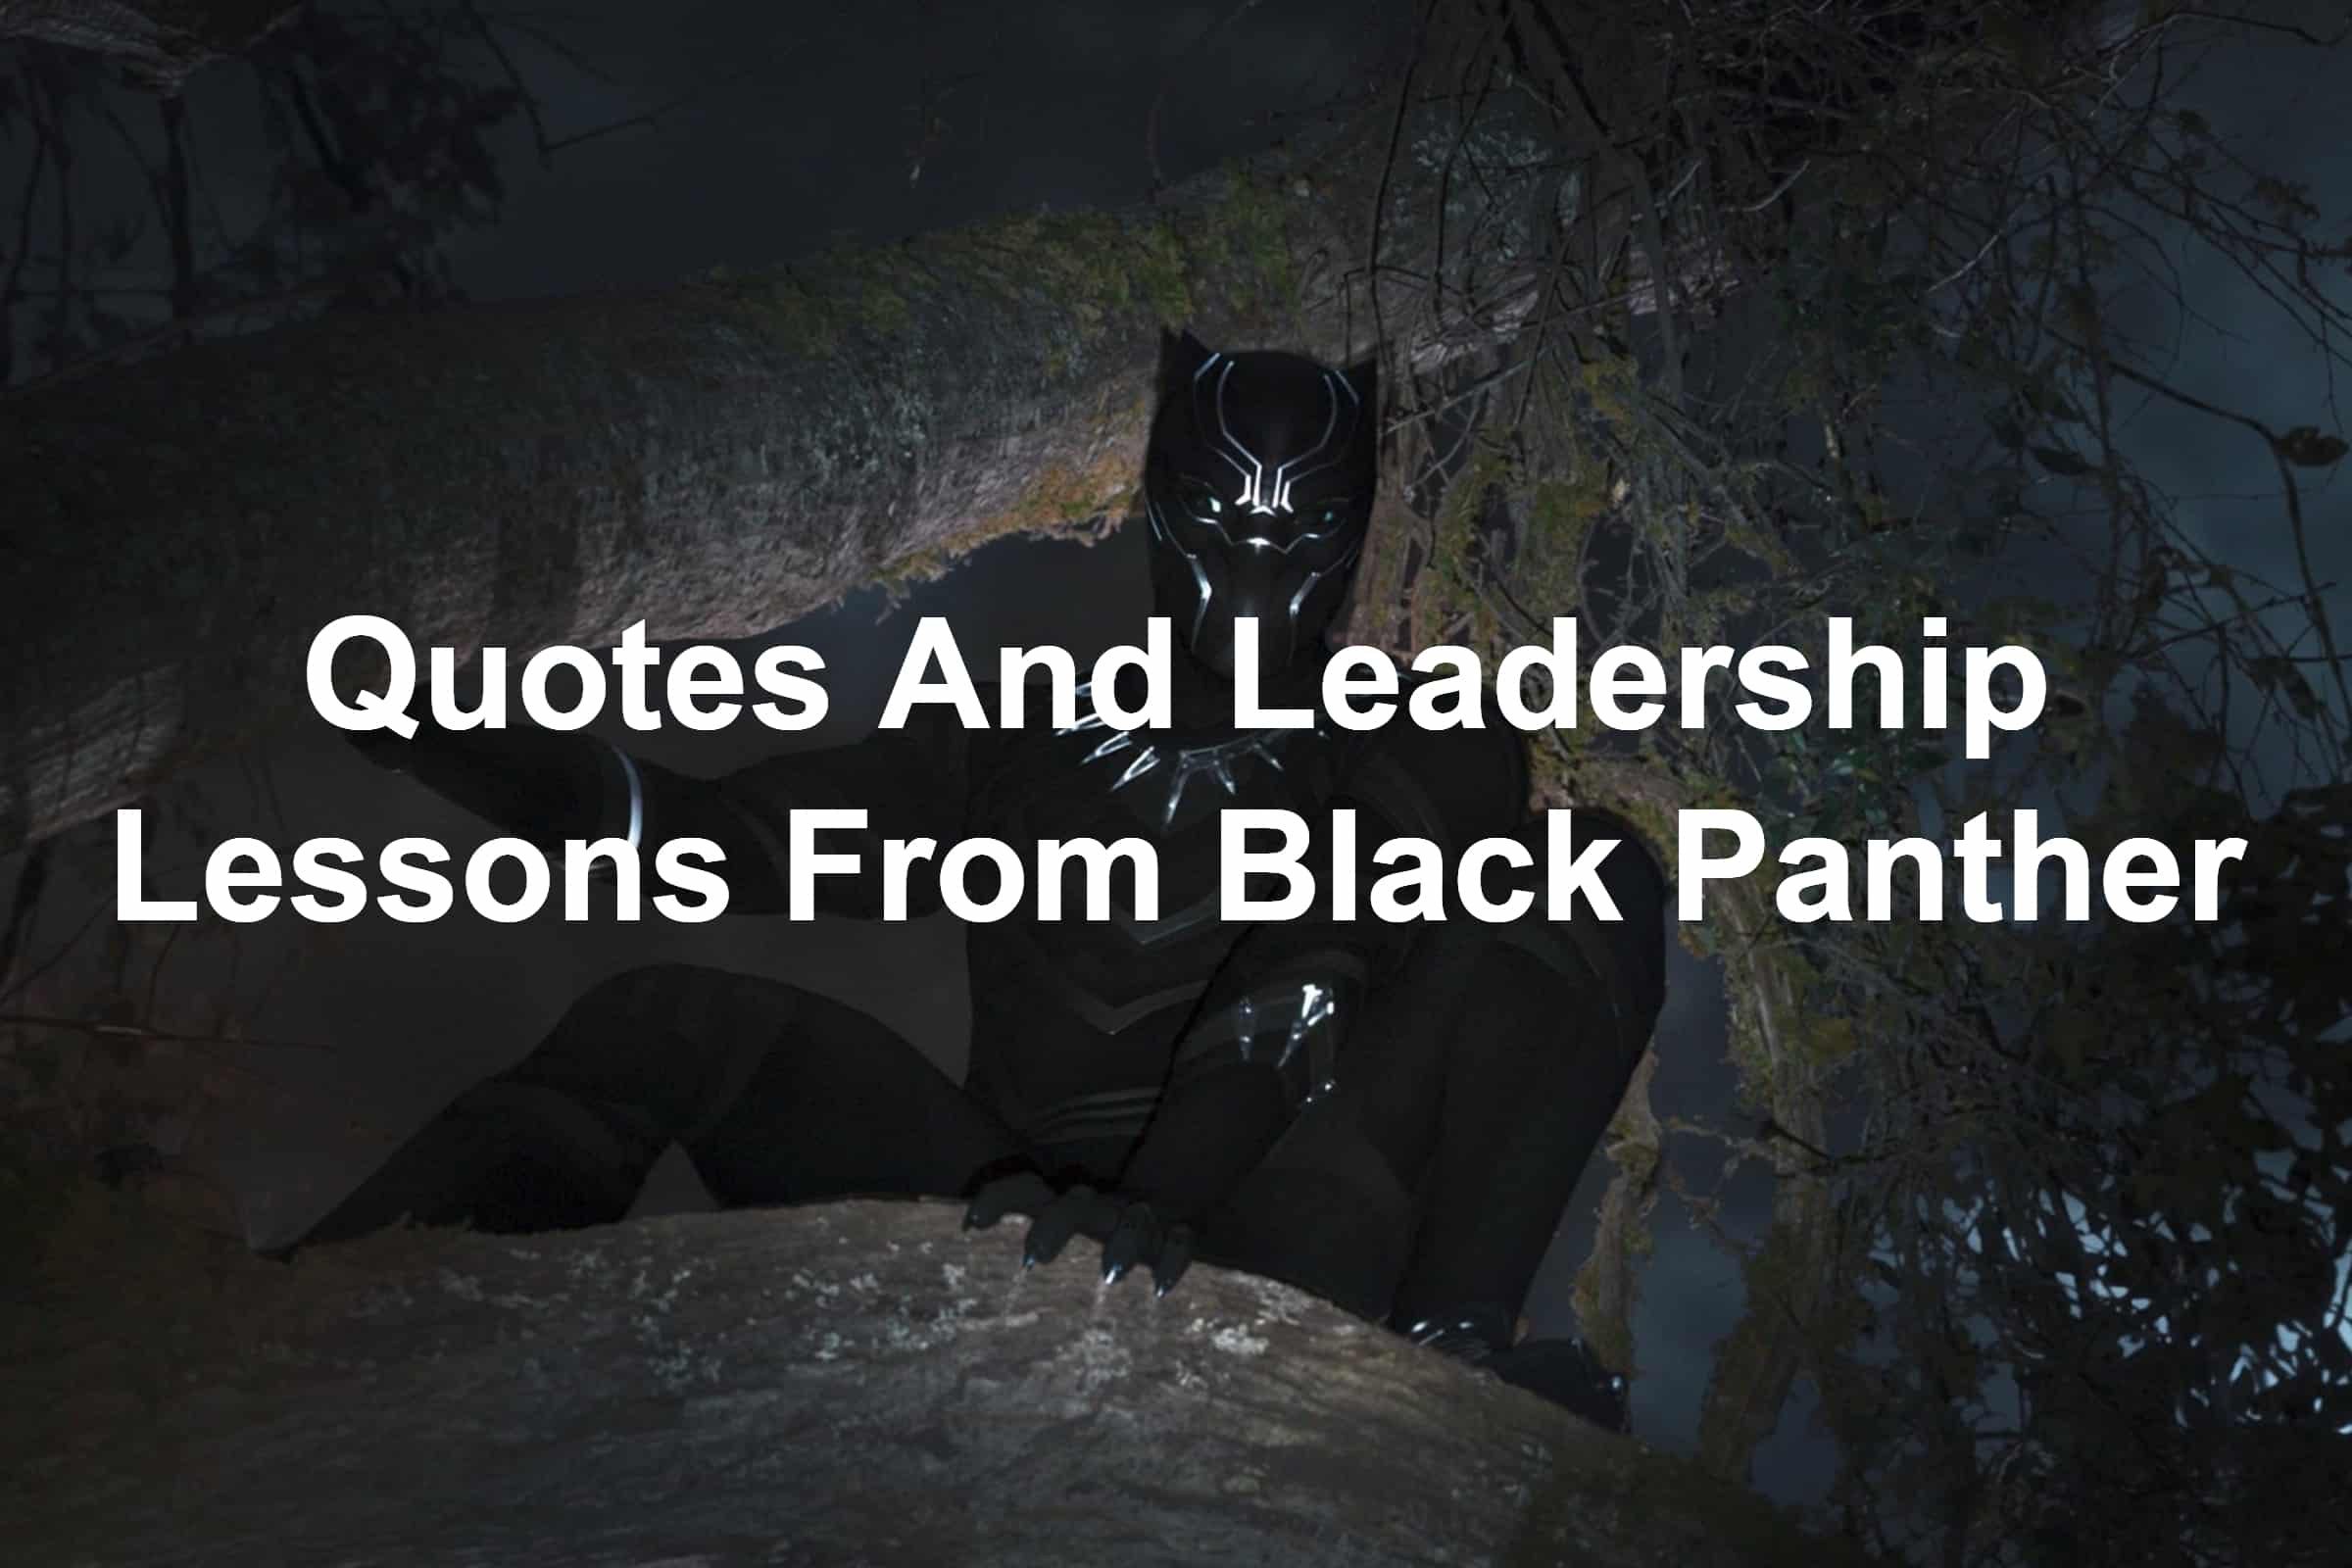 Black Panther Quotes And Leadership lessons